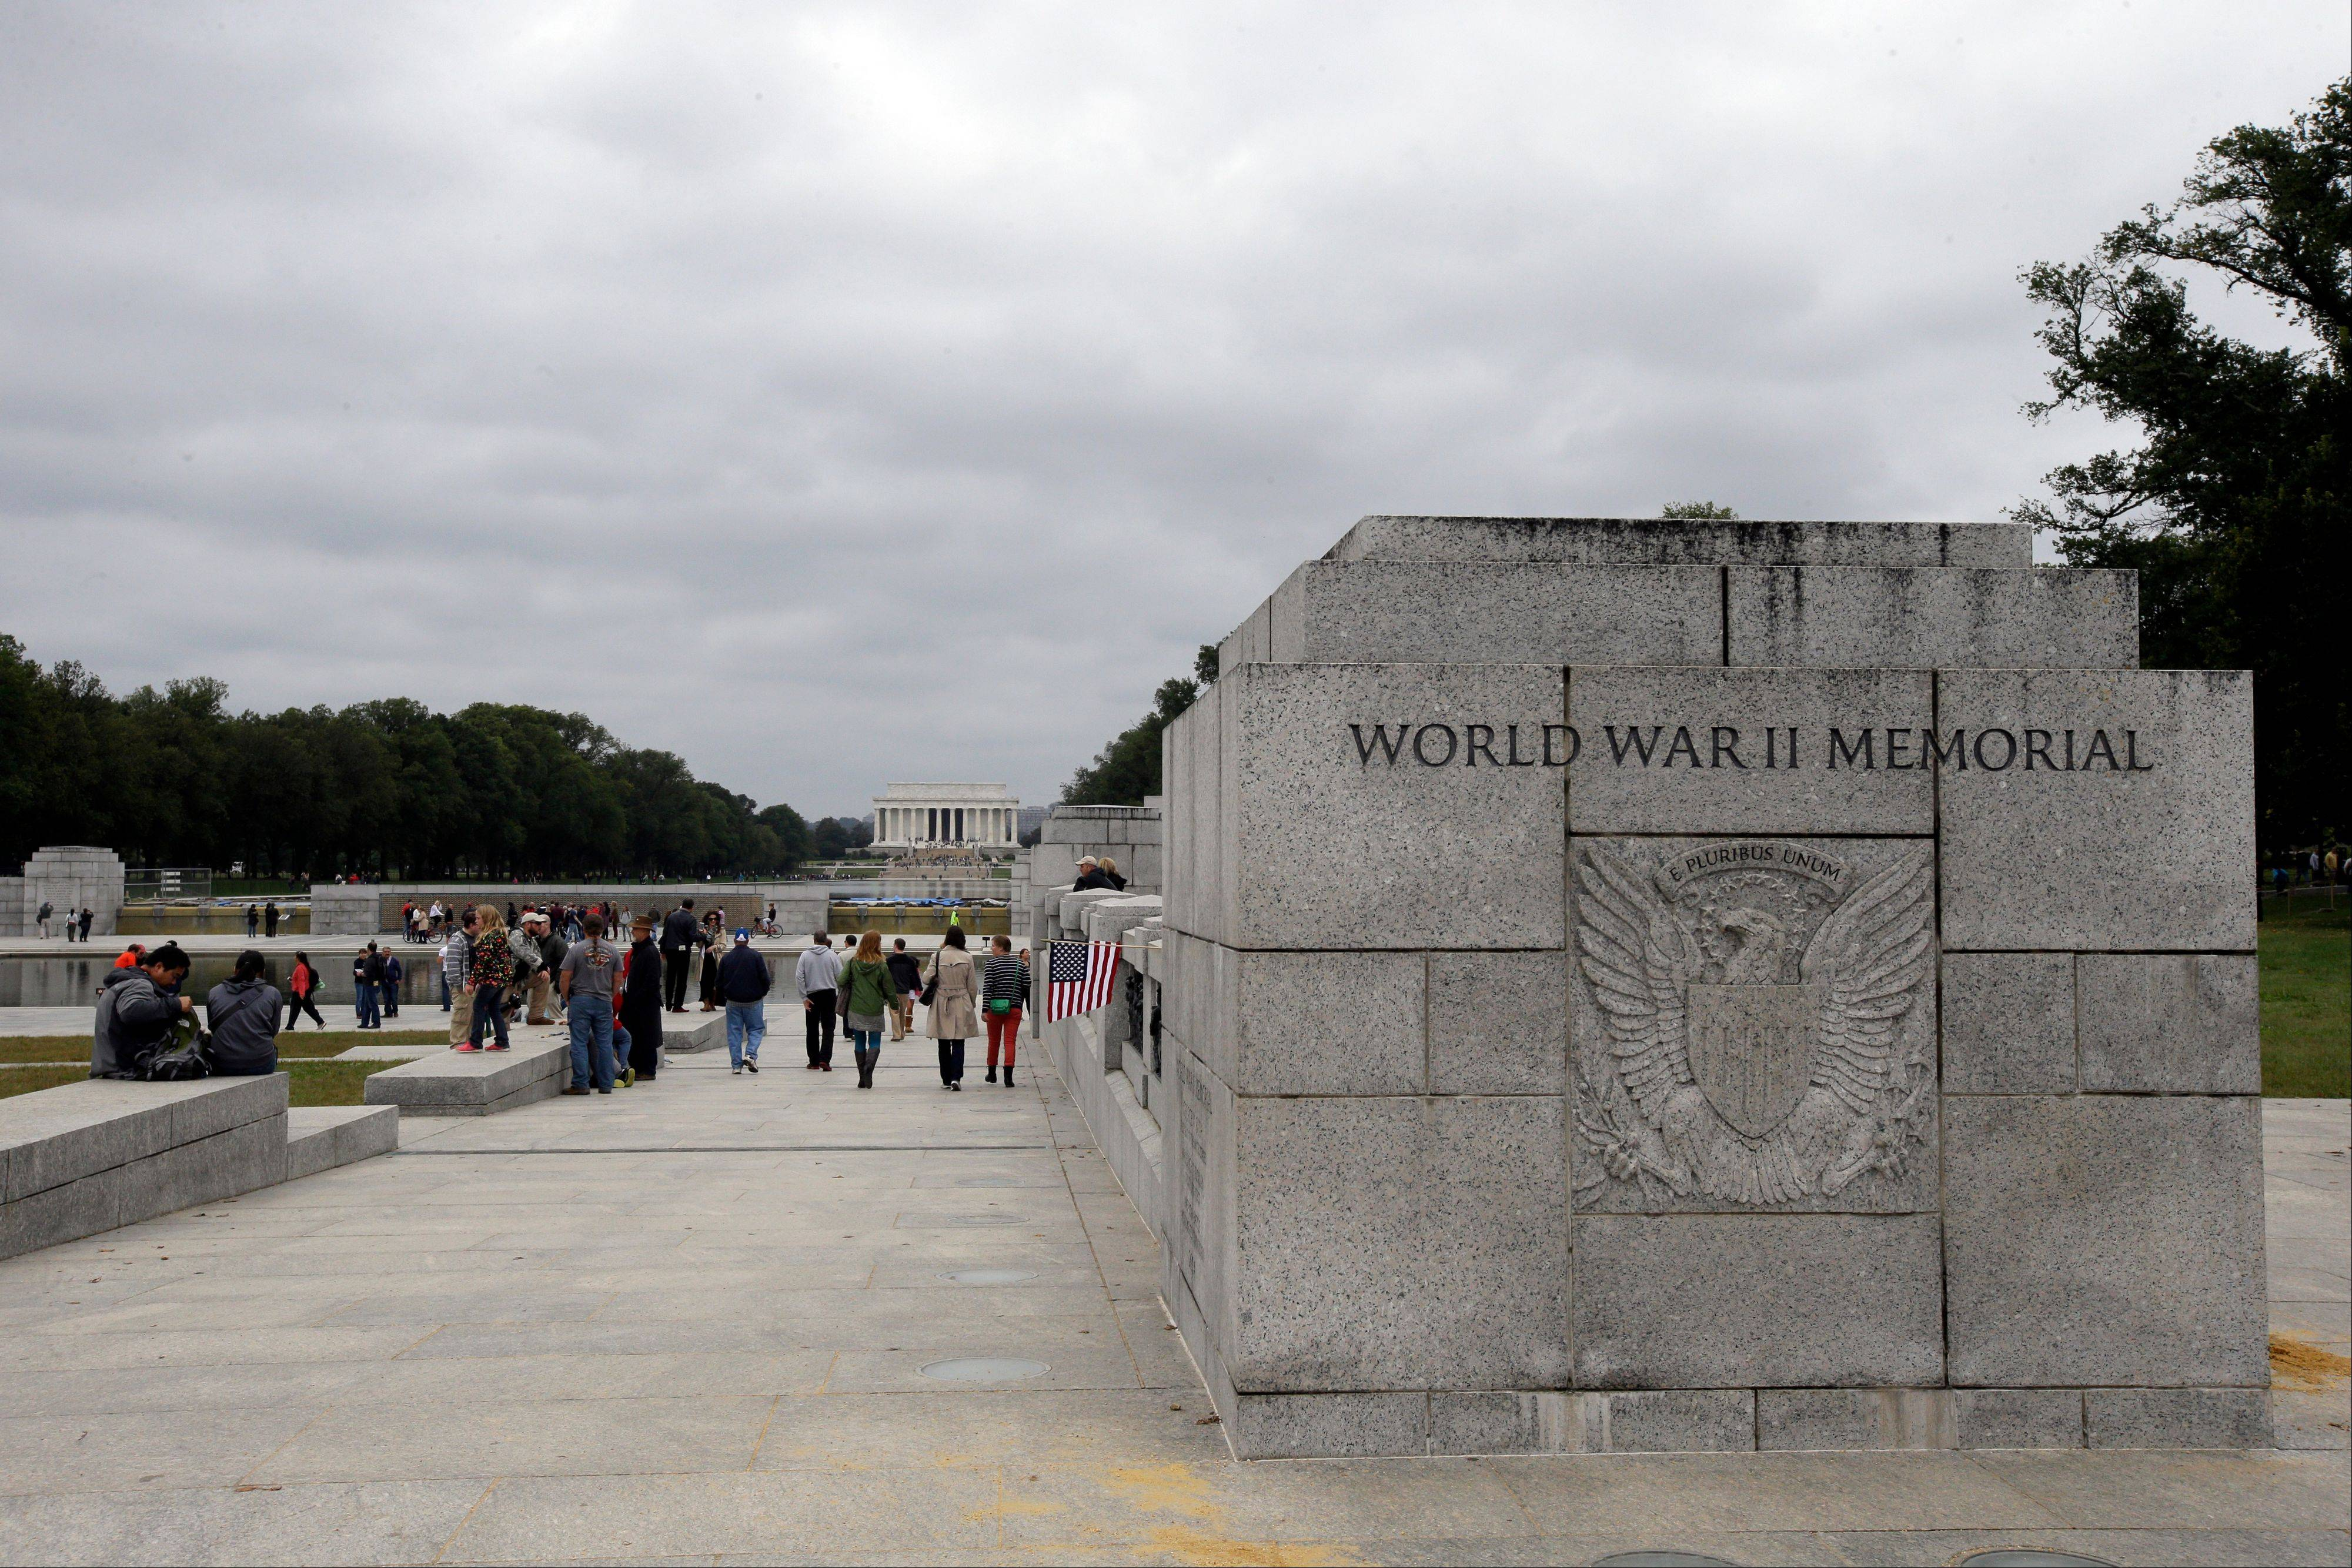 People walk around the World War II Memorial and the Lincoln Memorial, seen in the background, Sunday in Washington. The WWII memorial has been closed due to the government shutdown. Access barriers to the memorial site were moved aside by protesters.